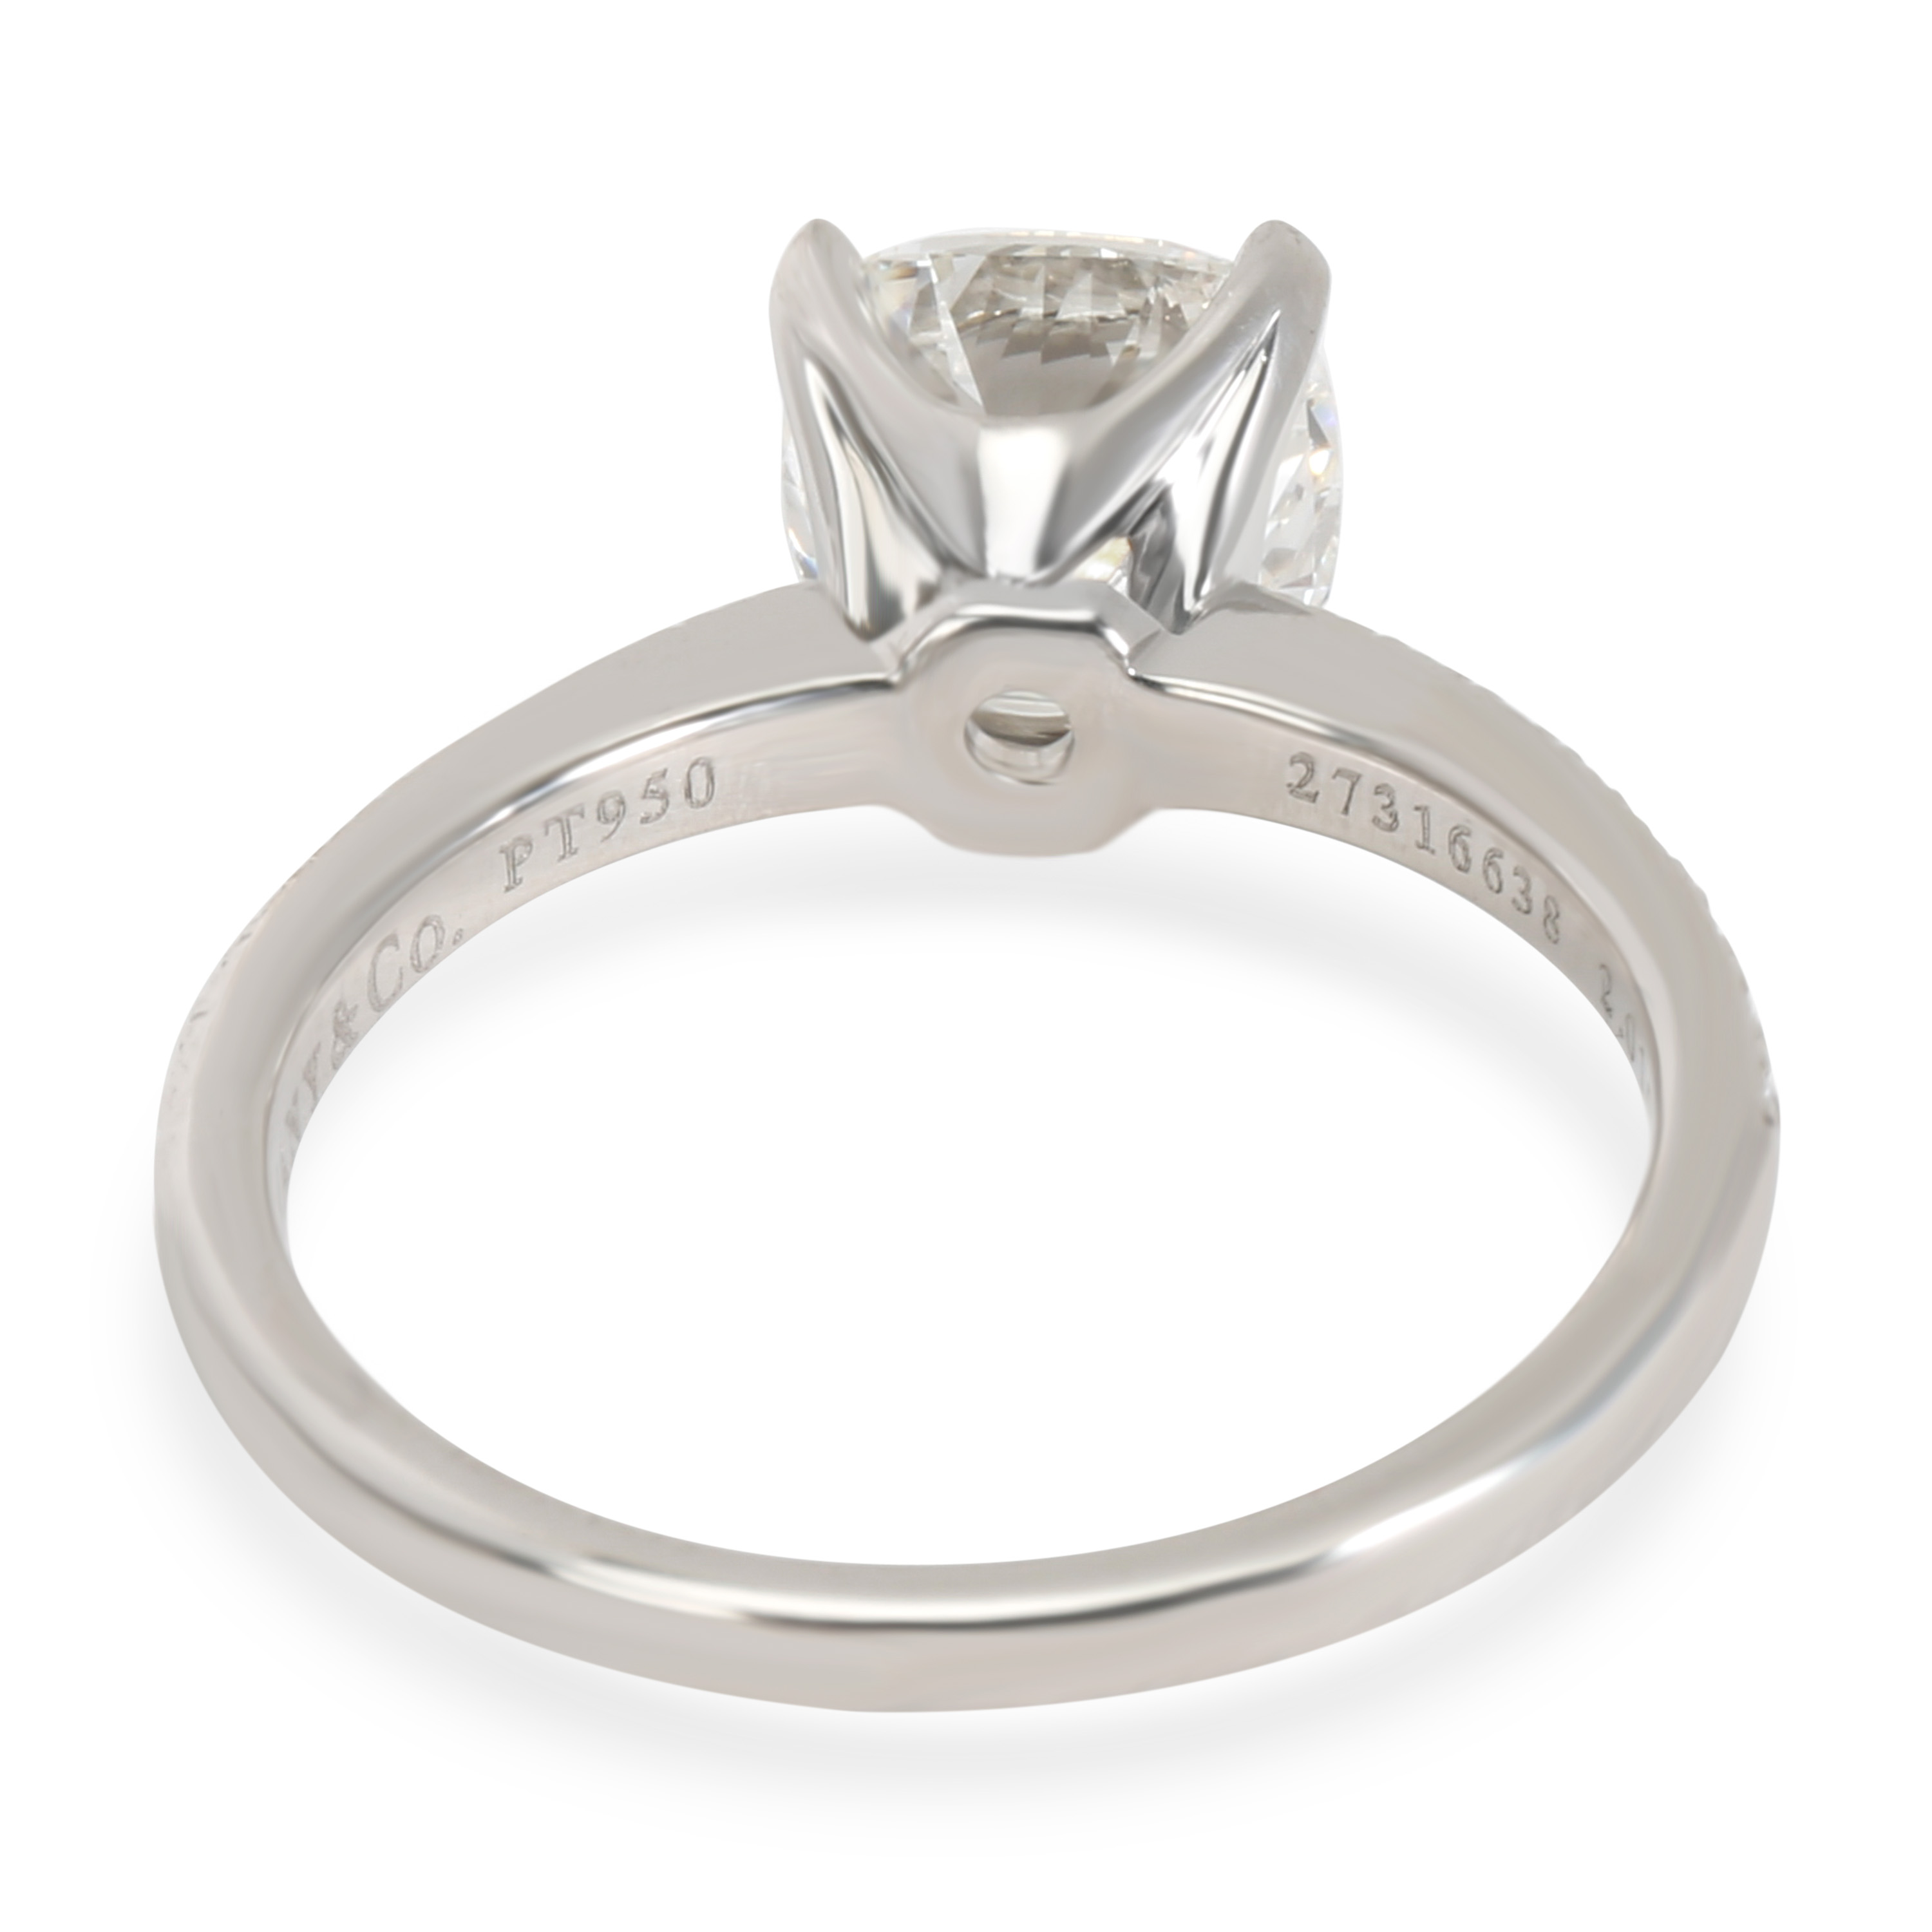 96a0418cd Tiffany & Co. Novo Cushion Diamond Engagement Ring in Platinum G ...